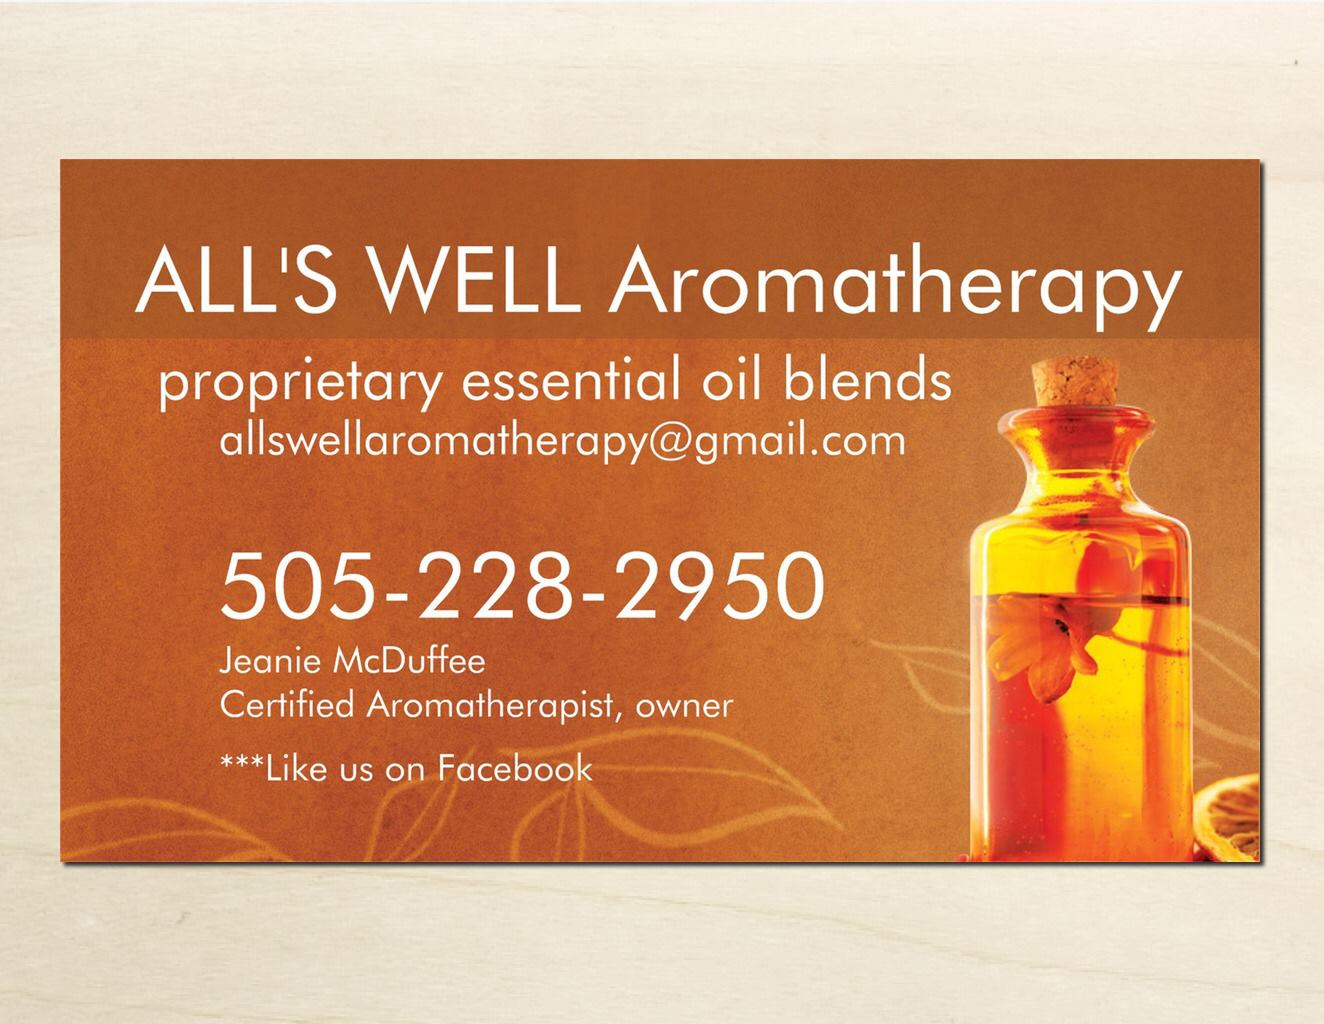 All's Well Aromatherapy